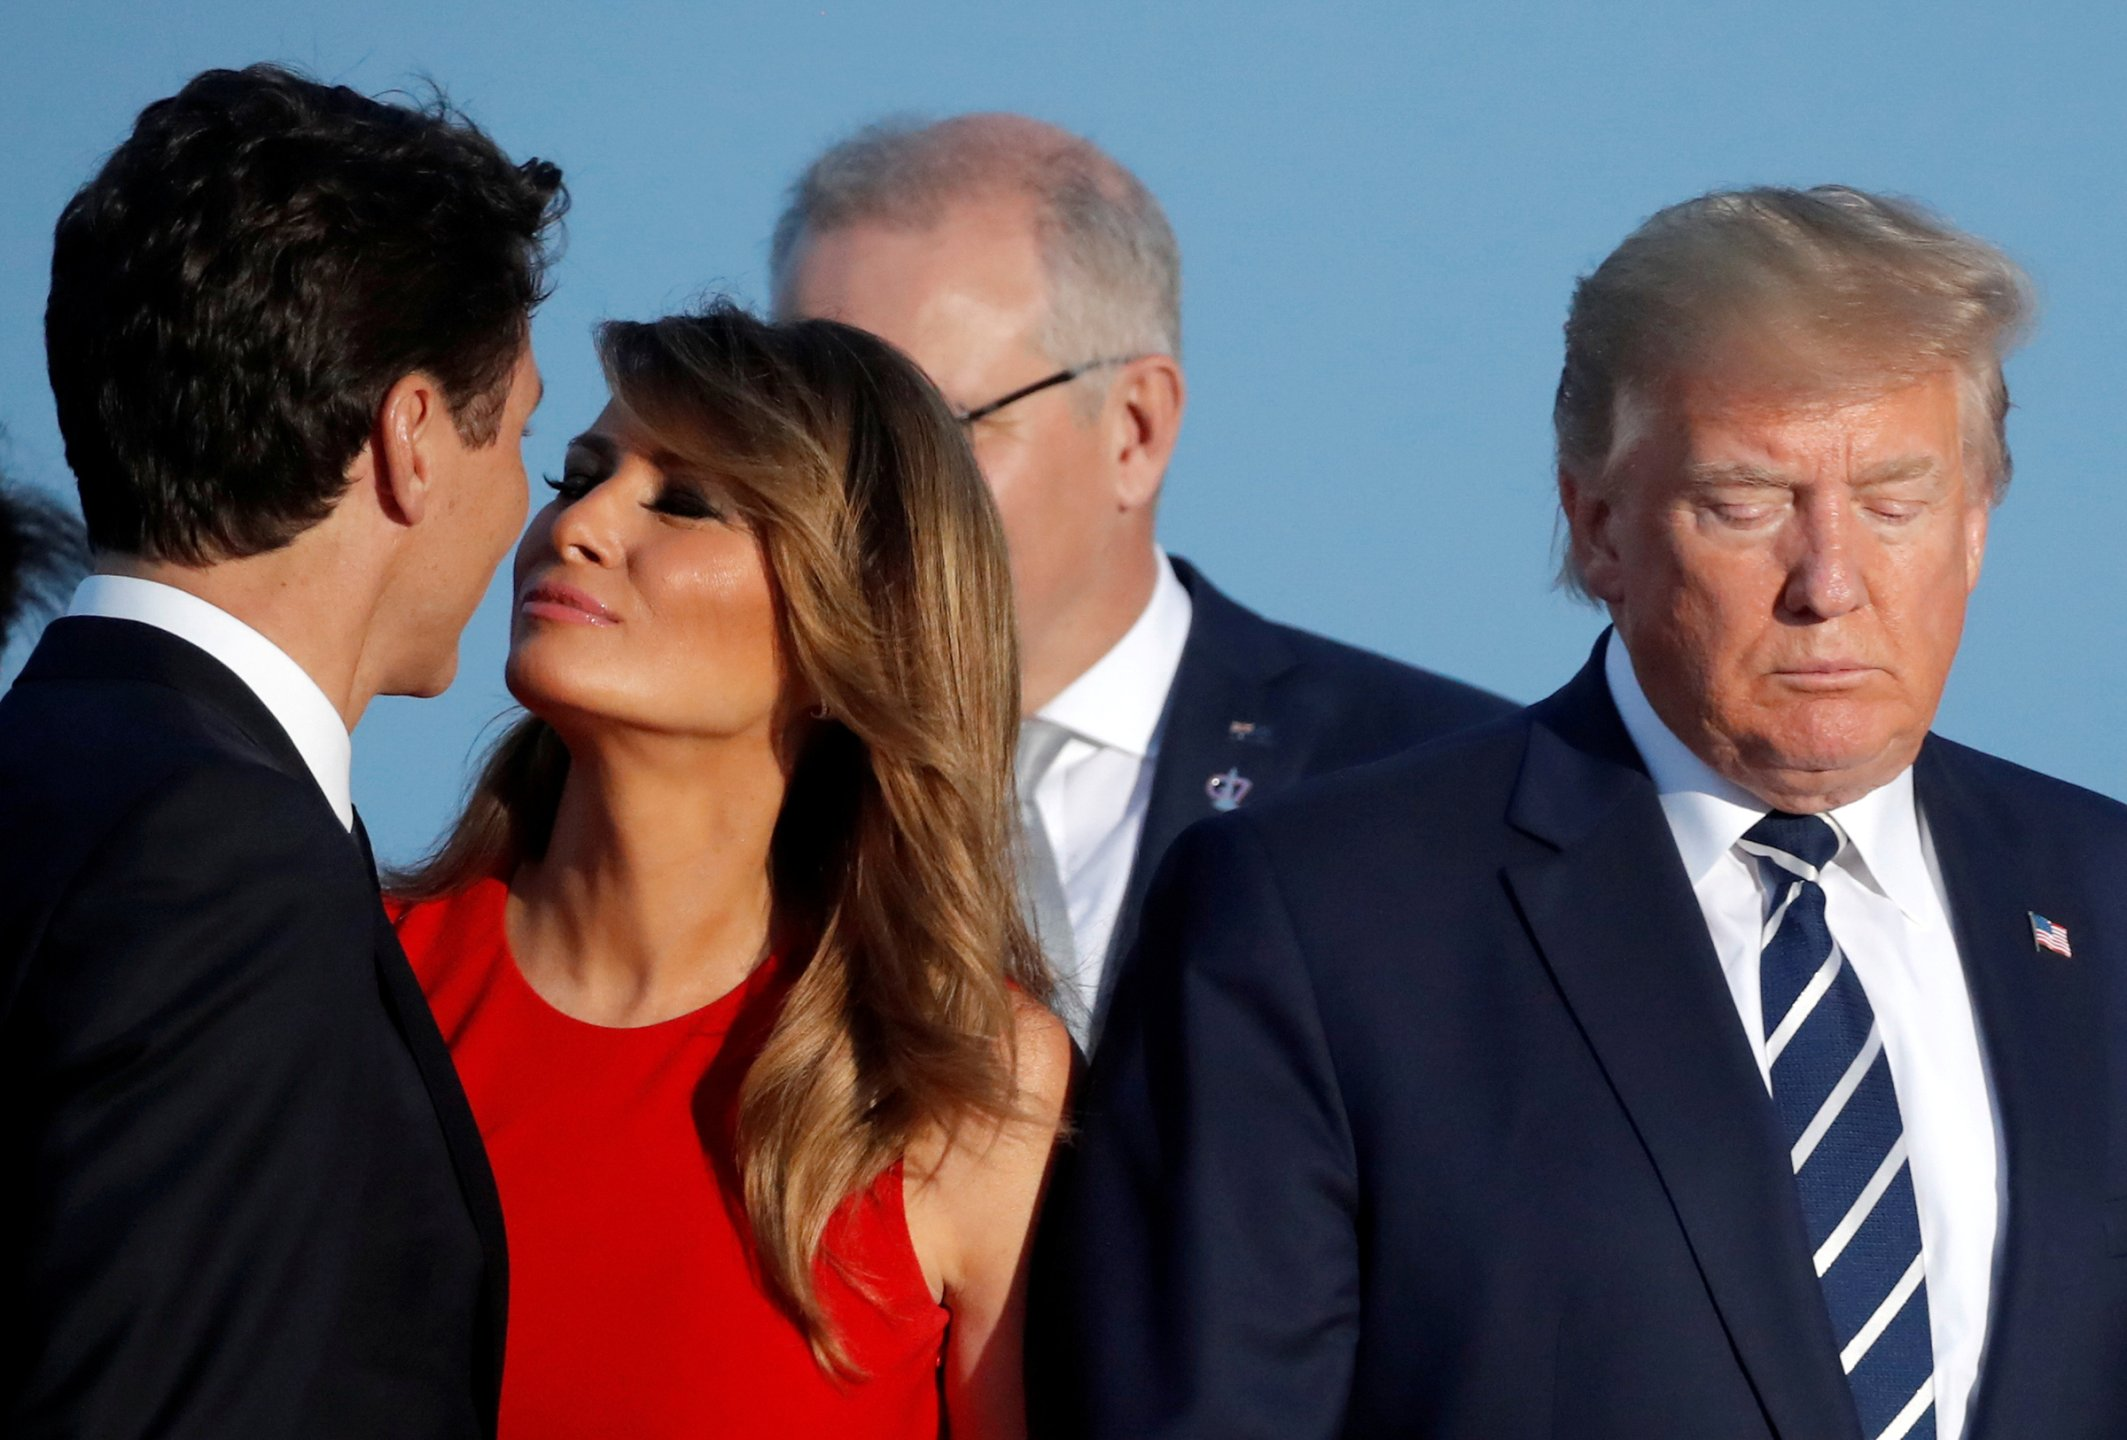 First Lady Melania Trump cheek-kisses Canadian Prime Minister Justin Trudeau next to President Trump during the family photo with invited guests at the G7 summit in Biarritz, France, in August.